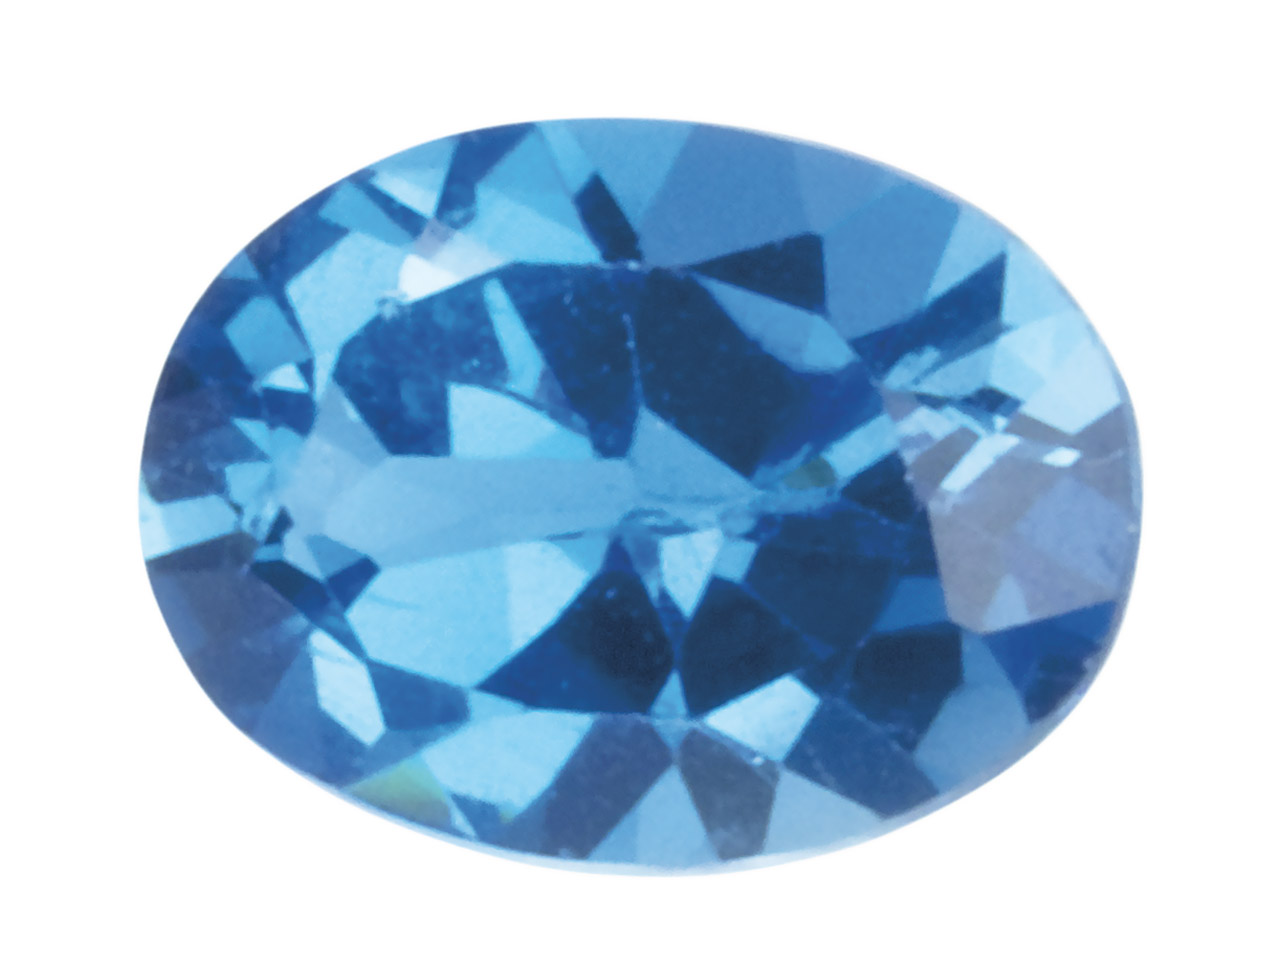 London Blue Topaz, Oval, 5x4mm,    Treated